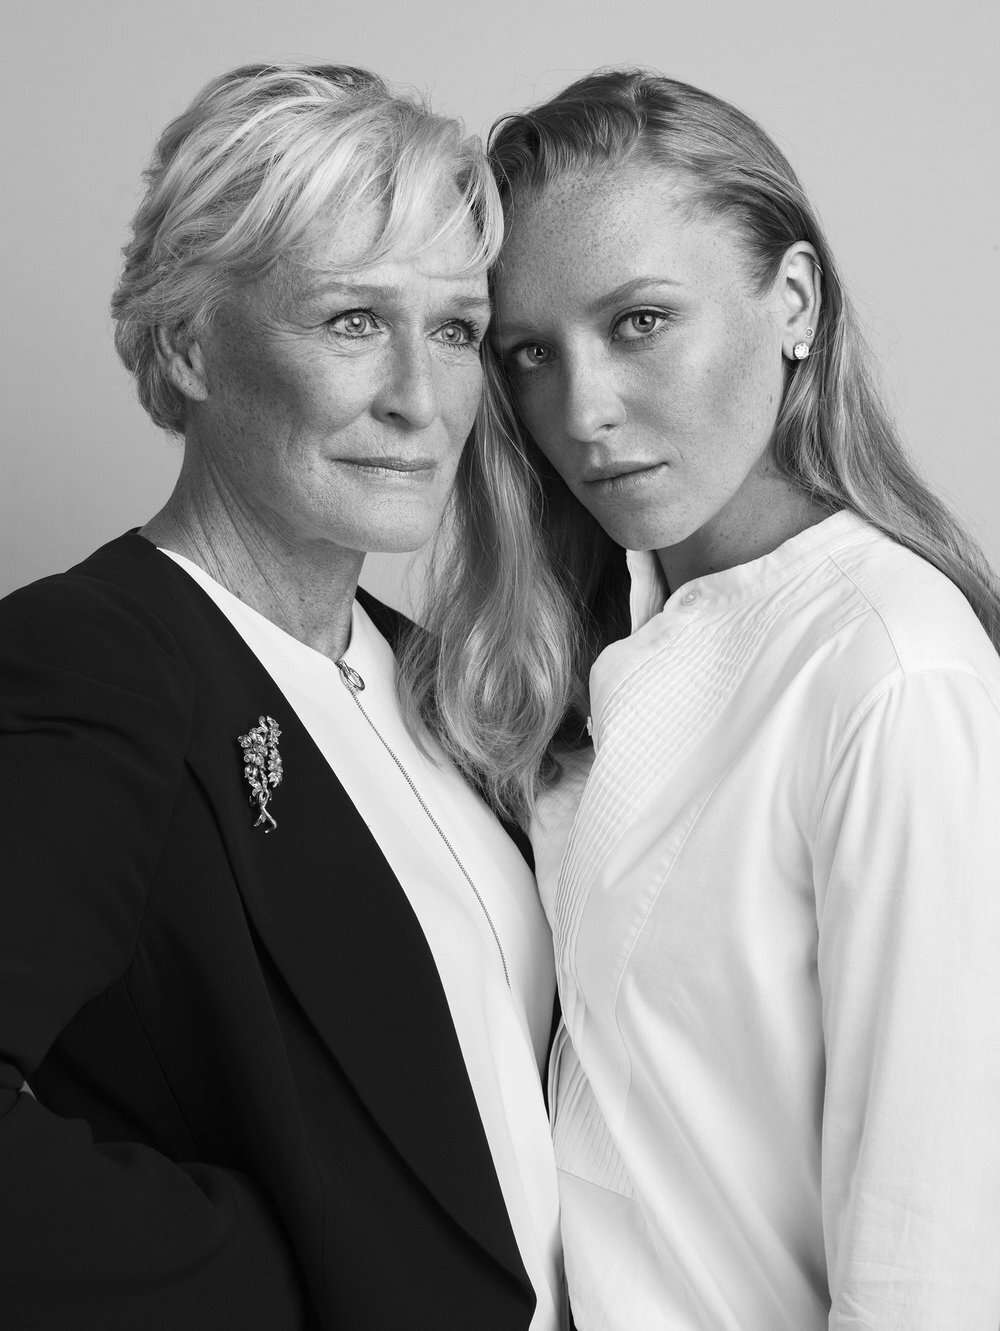 glenn_close_and_annie_starke_by_sandro_baebler.jpg